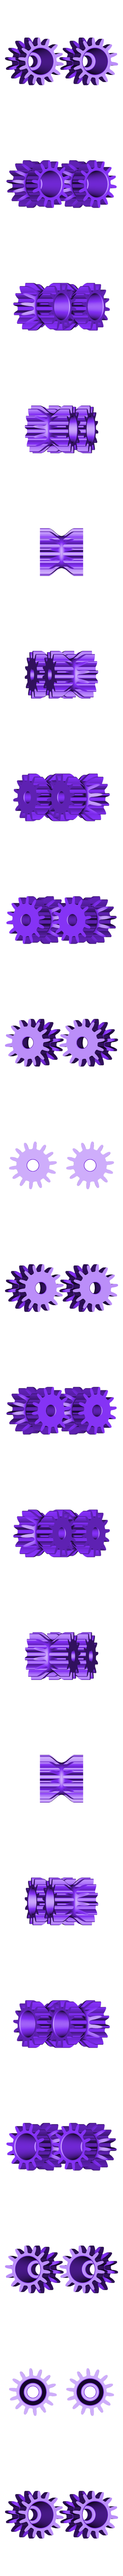 Idle Gears Only.stl Download free STL file Dragster • 3D printable design, FerryTeacher